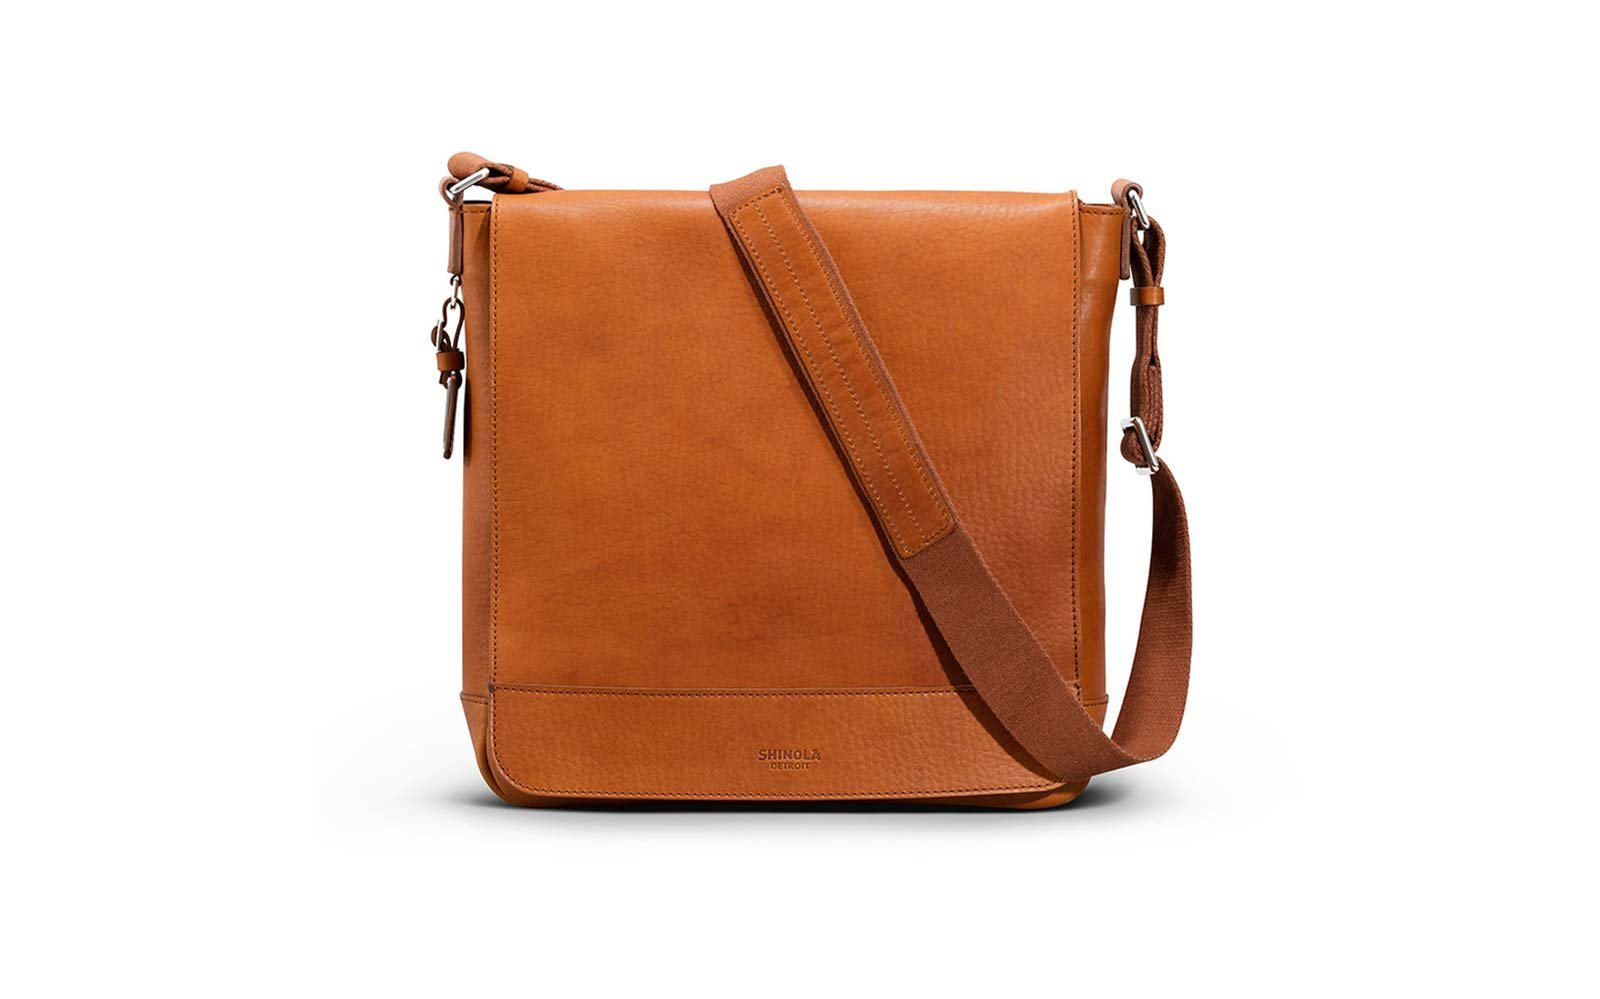 760d5e9da2 The 9 Best Leather Messenger Bags for Men